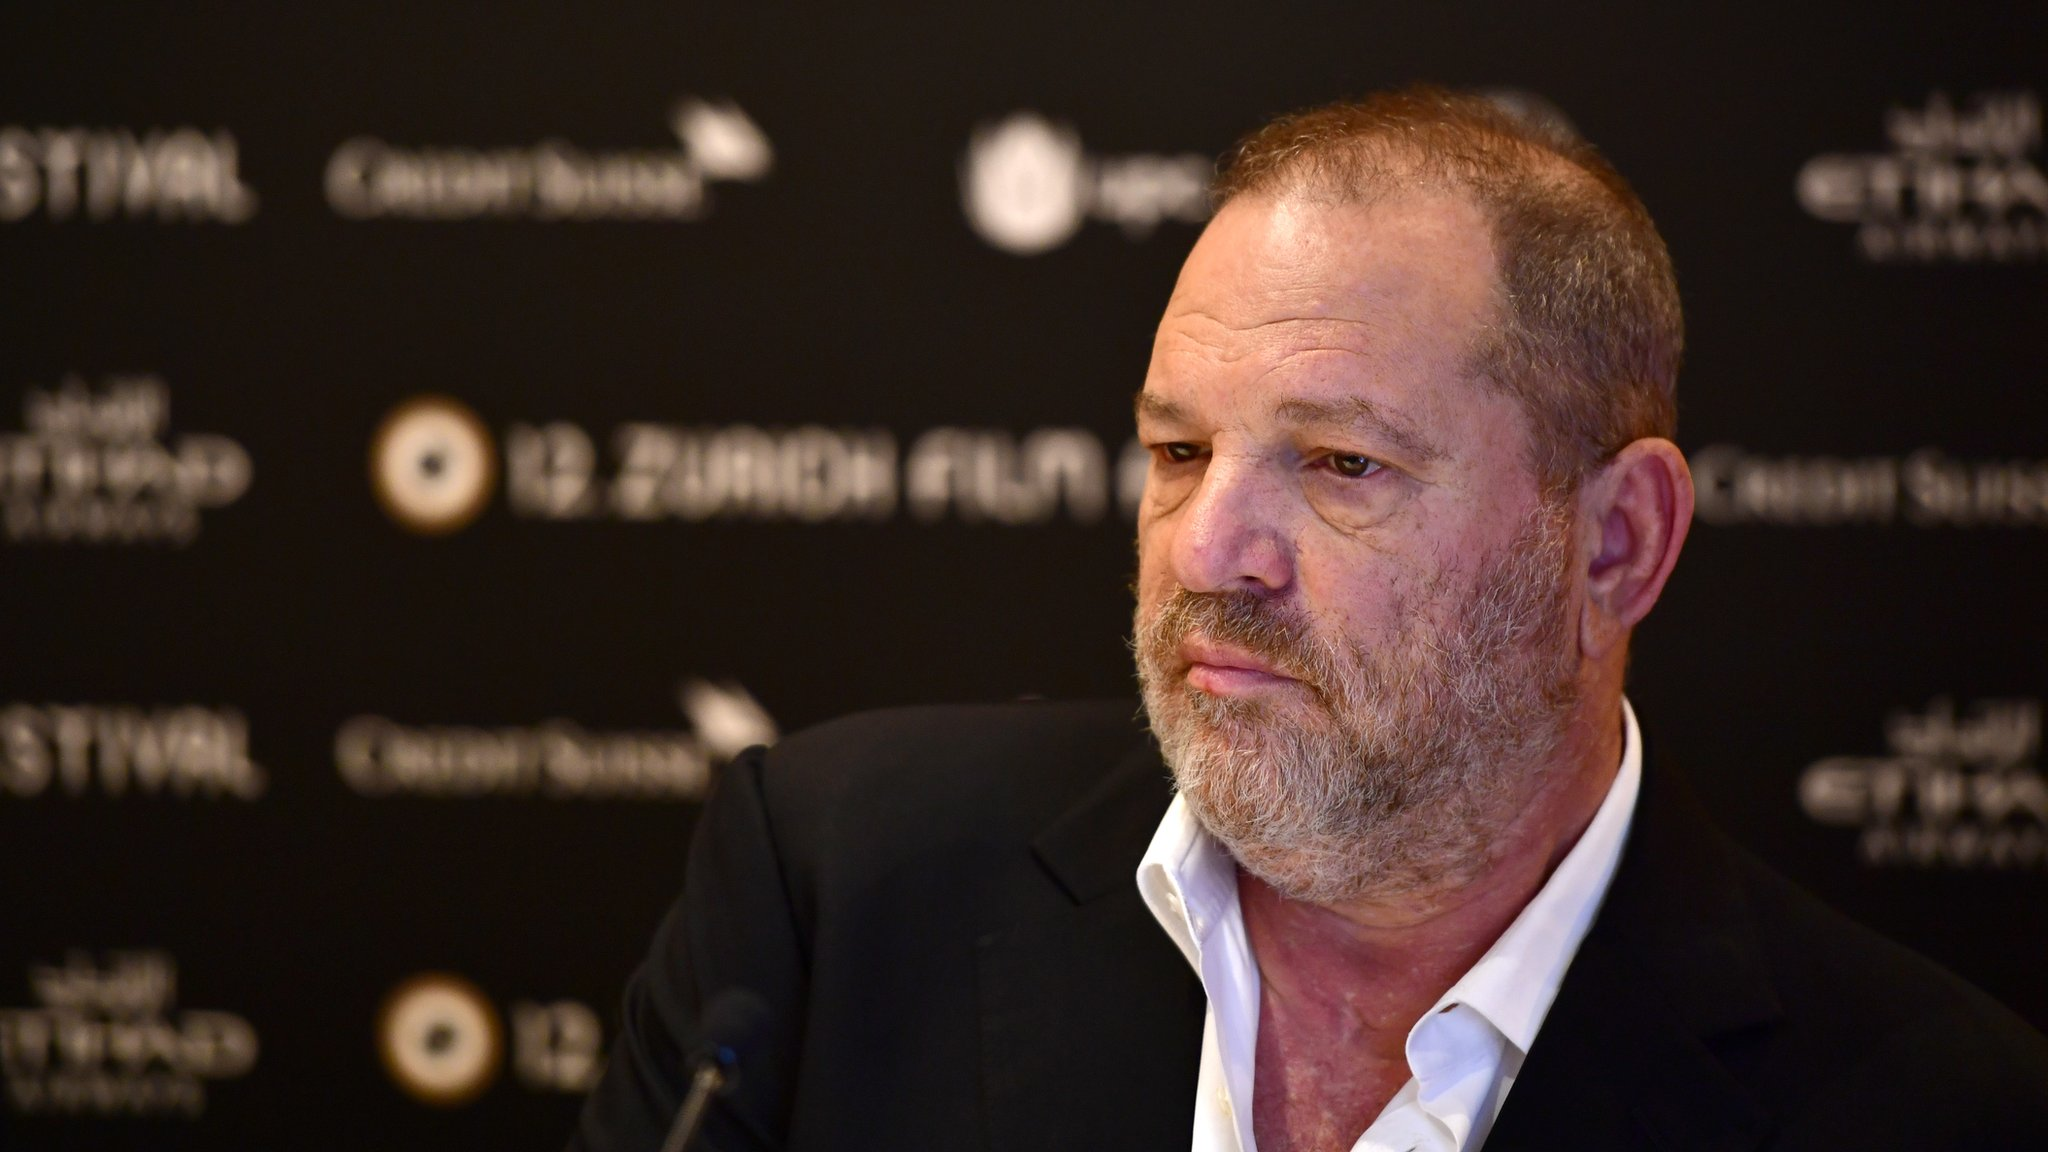 Harvey Weinstein Film Producer Says I Have Caused A Lot Of Pain Bbc News